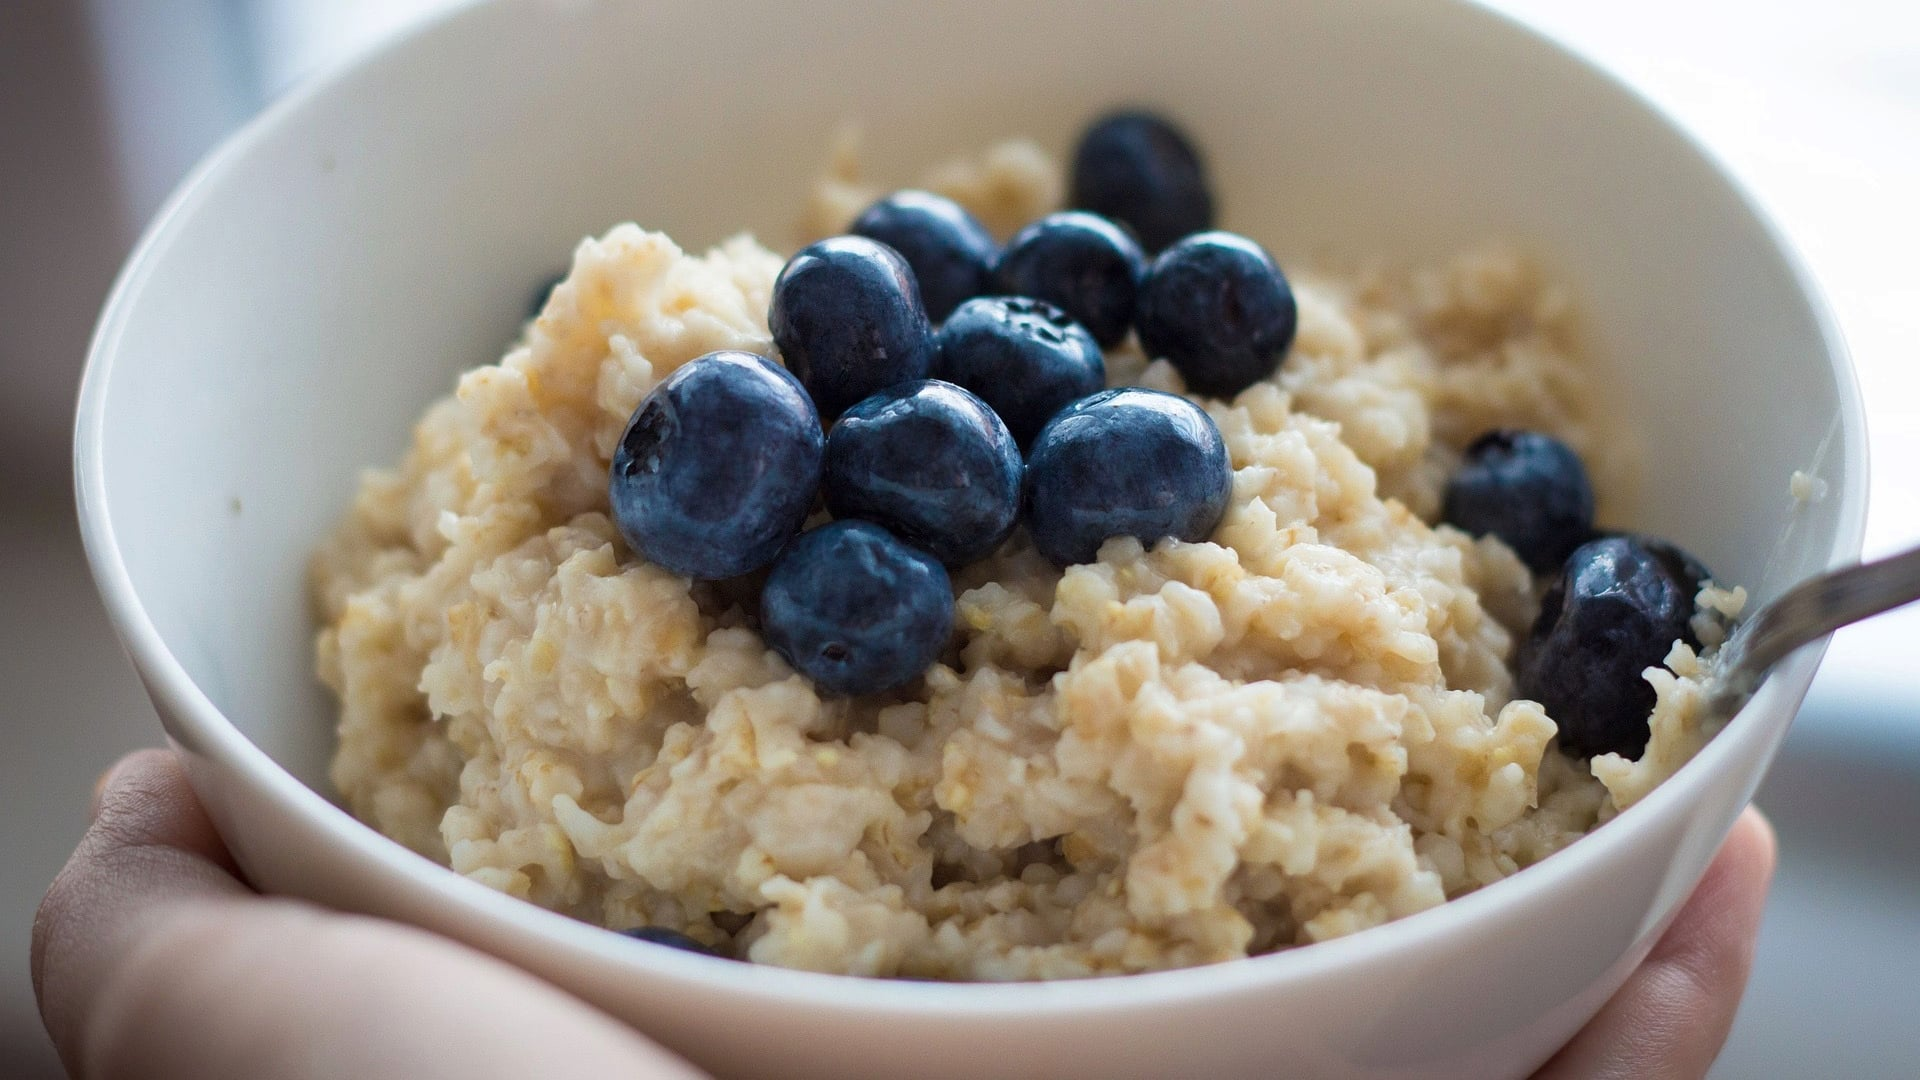 Can Oatmeal Help Fatty Liver Disease?